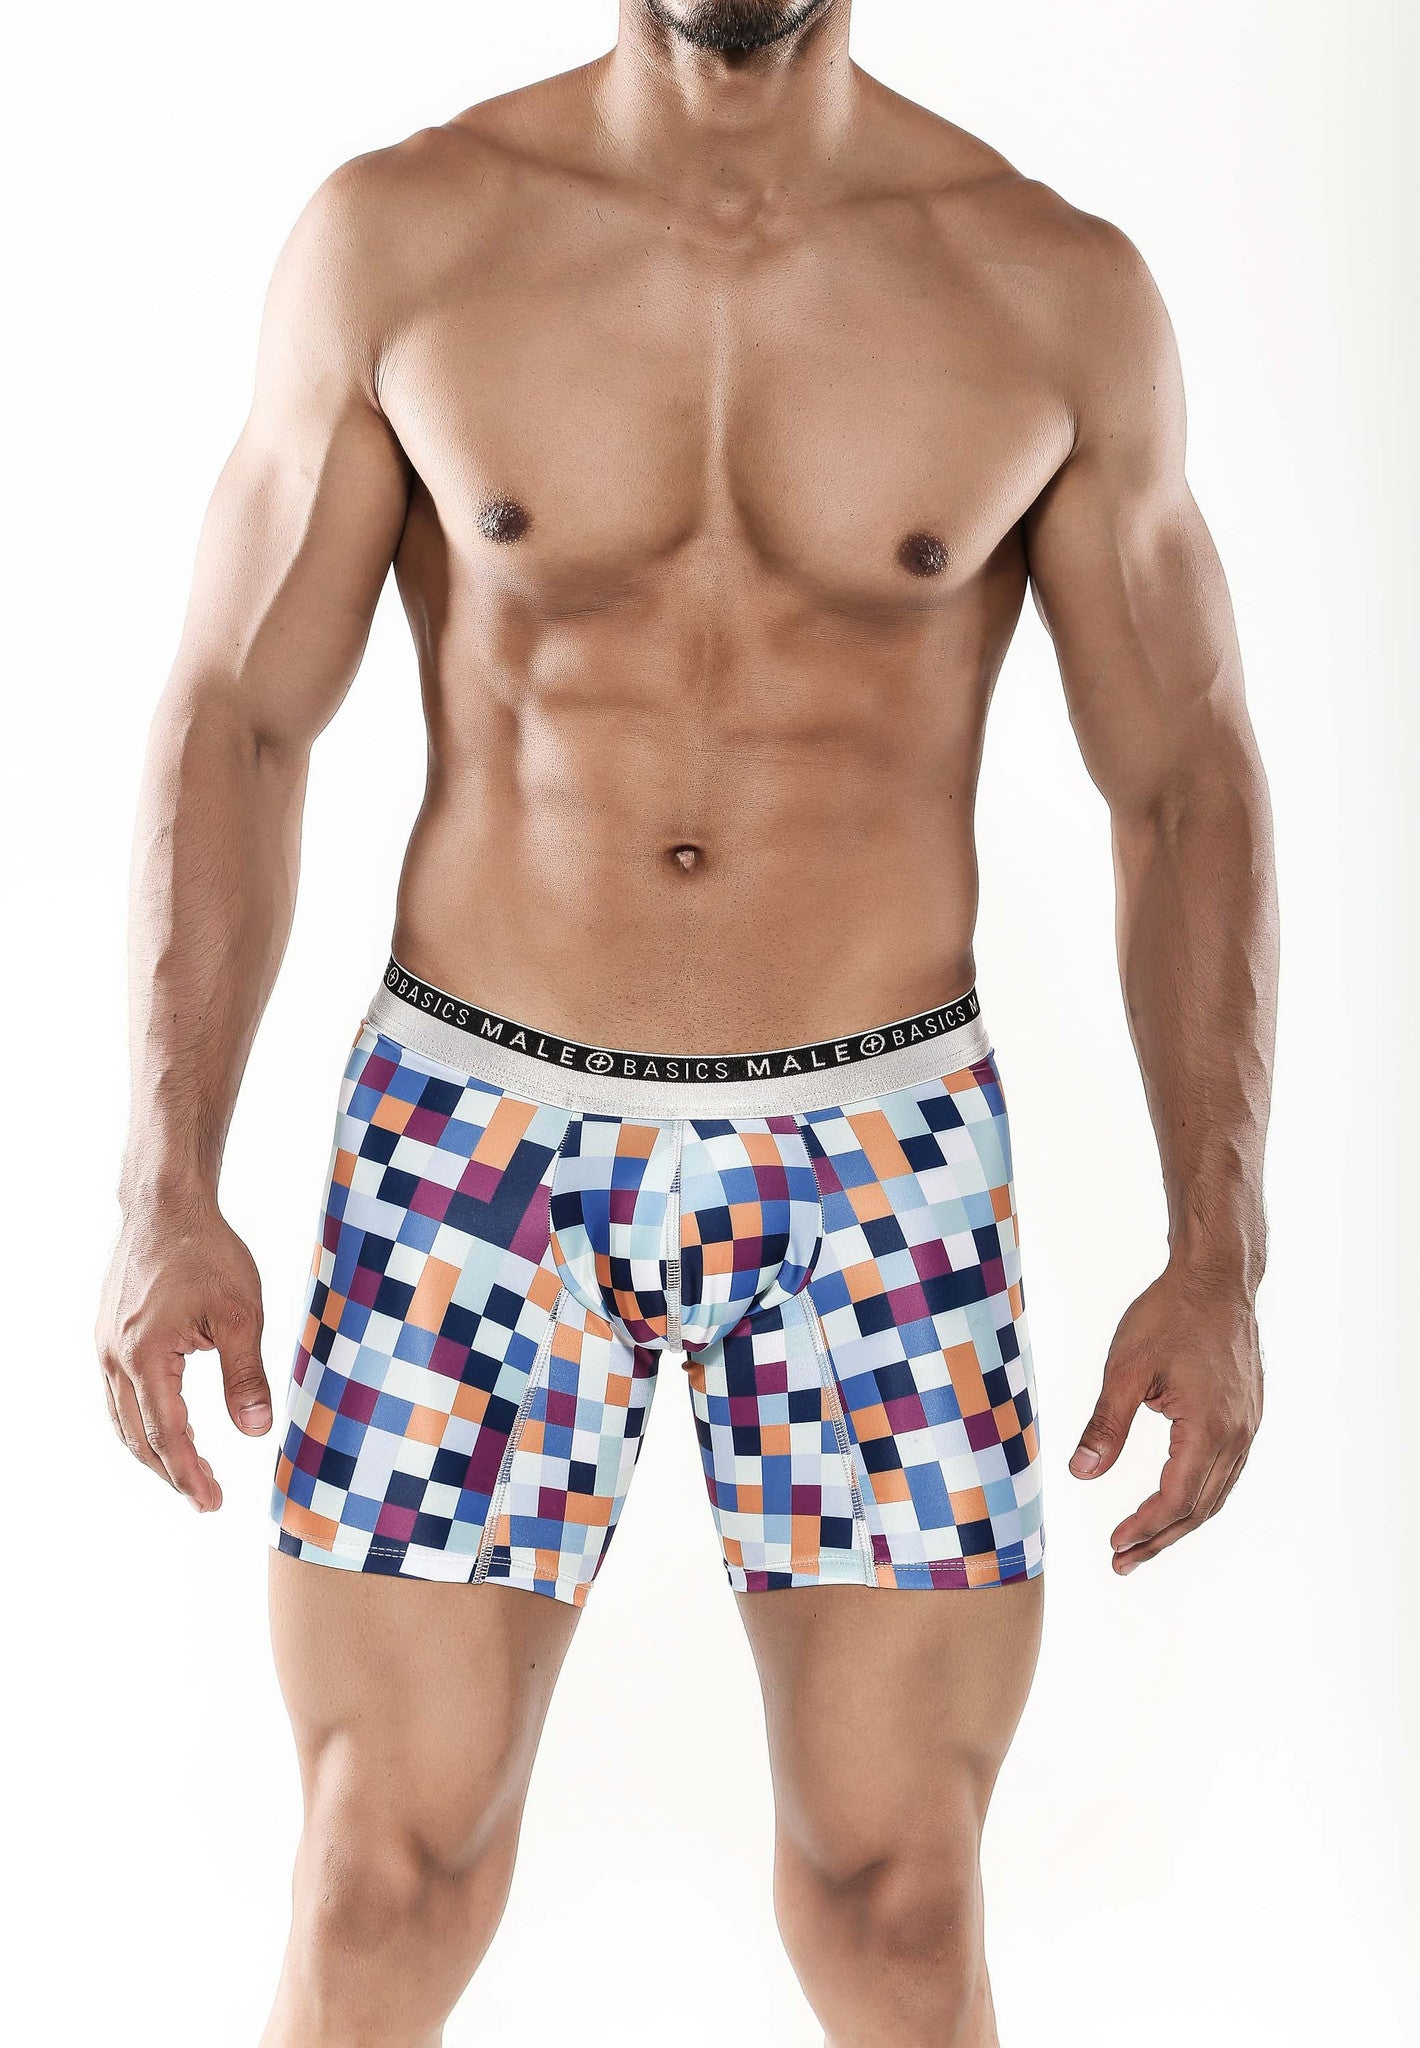 Hipster Boxer Brief - Malebasics Canada - 1